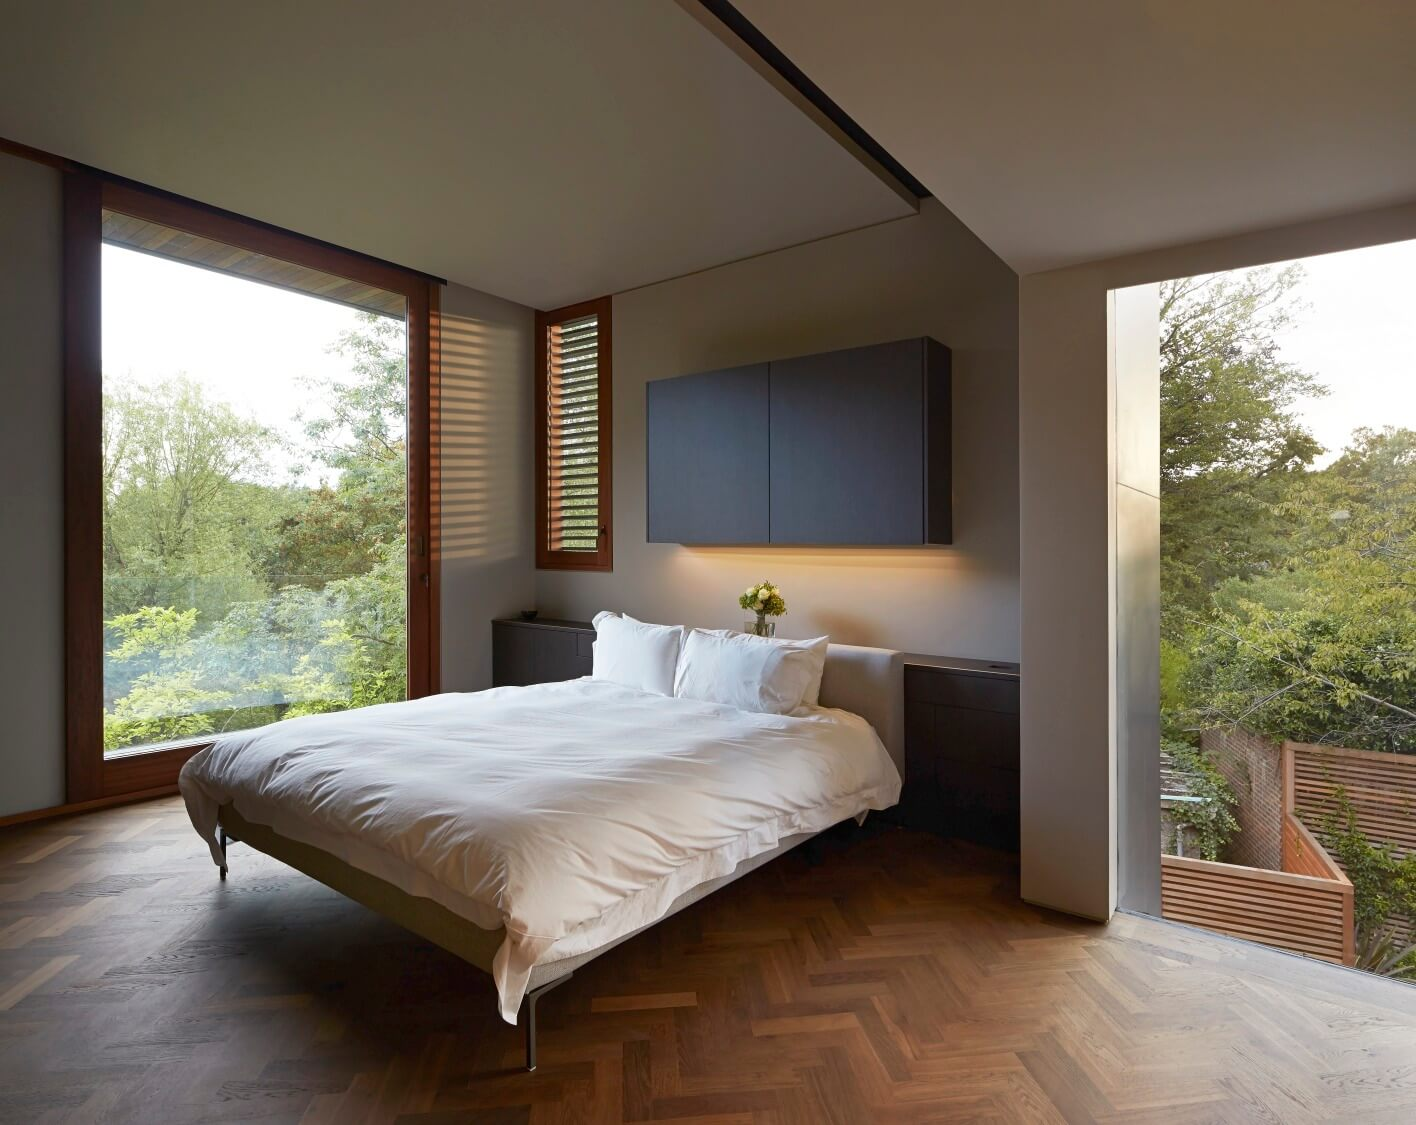 Primary bedroom on the upper floor features intricate hardwood flooring and direct balcony access.